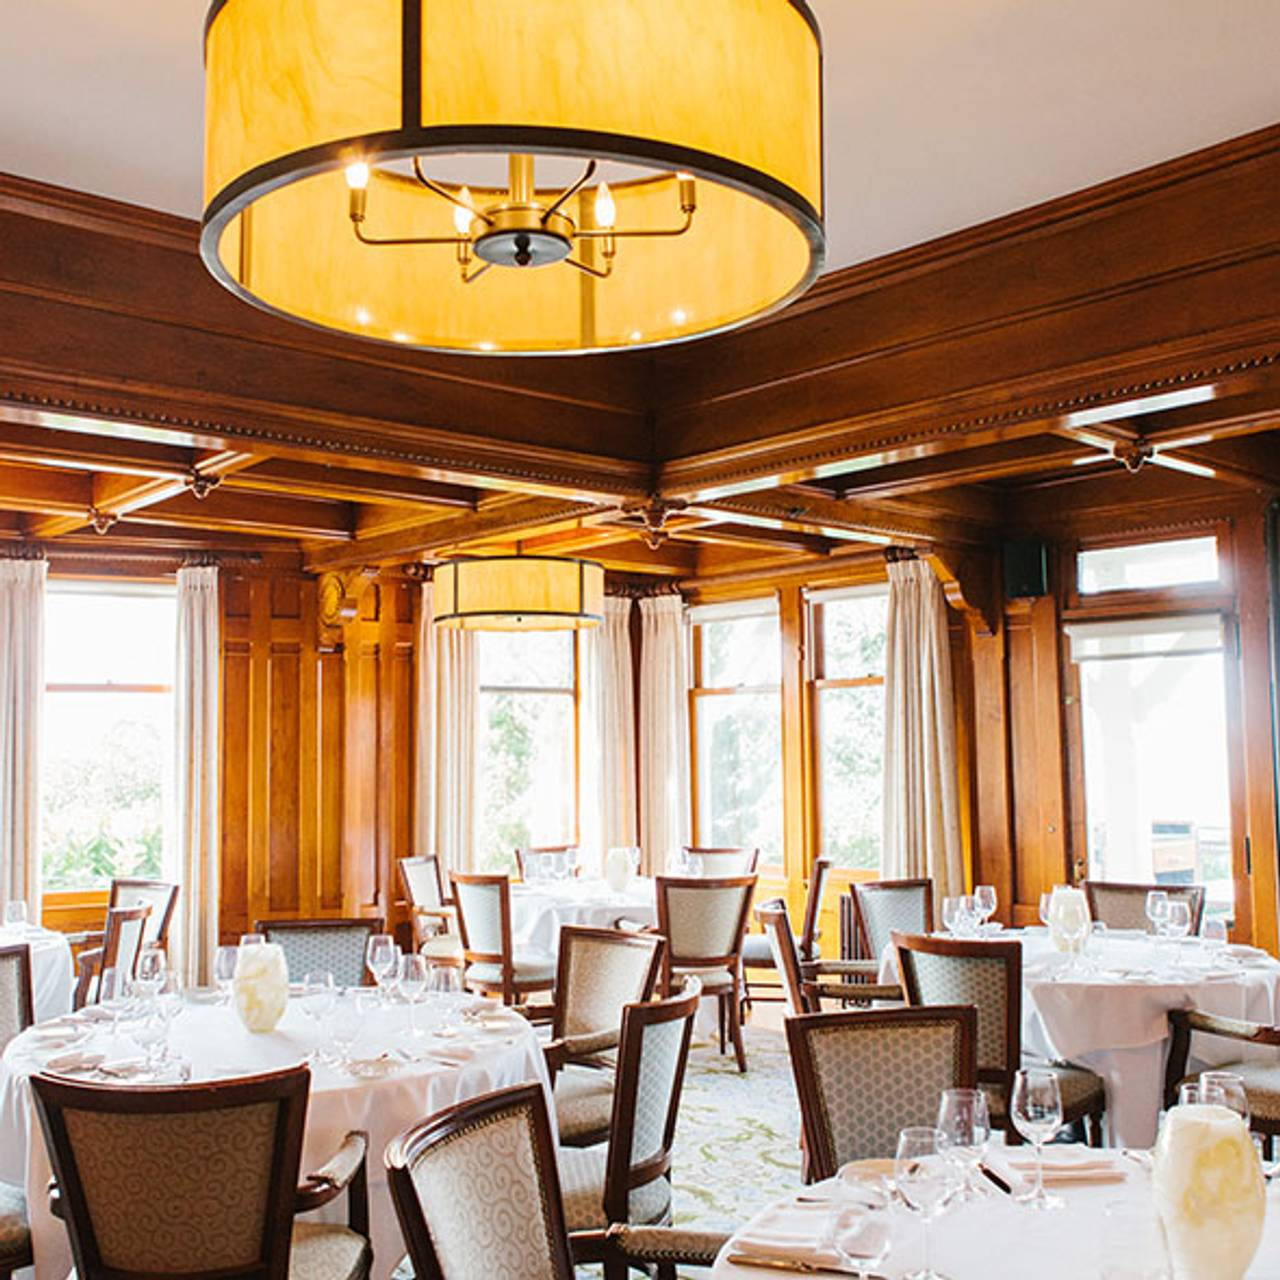 The Dining Room At Castle Hill Inn Restaurant Newport RI OpenTable Unique The Dining Room